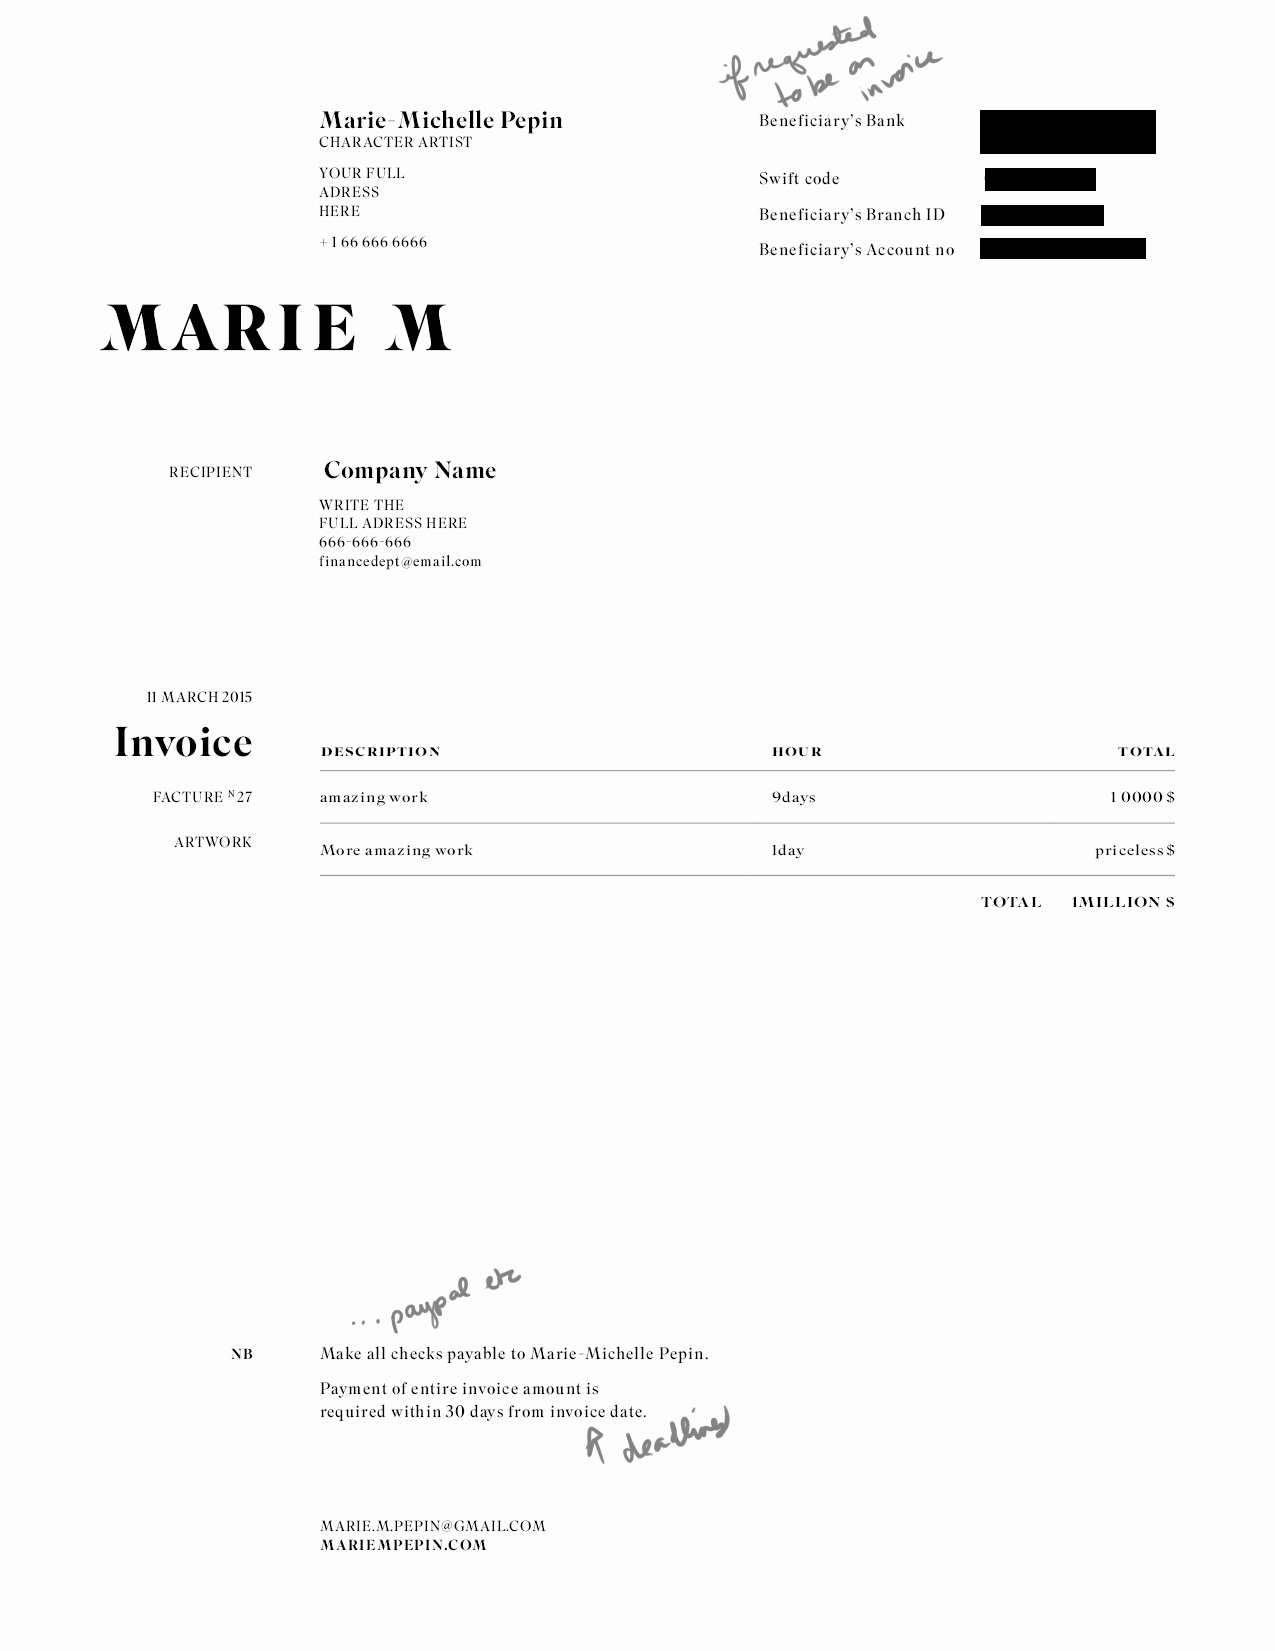 Freelance Artist Invoice 127538 50 New Makeup Artist Invoice Template Graphics Free